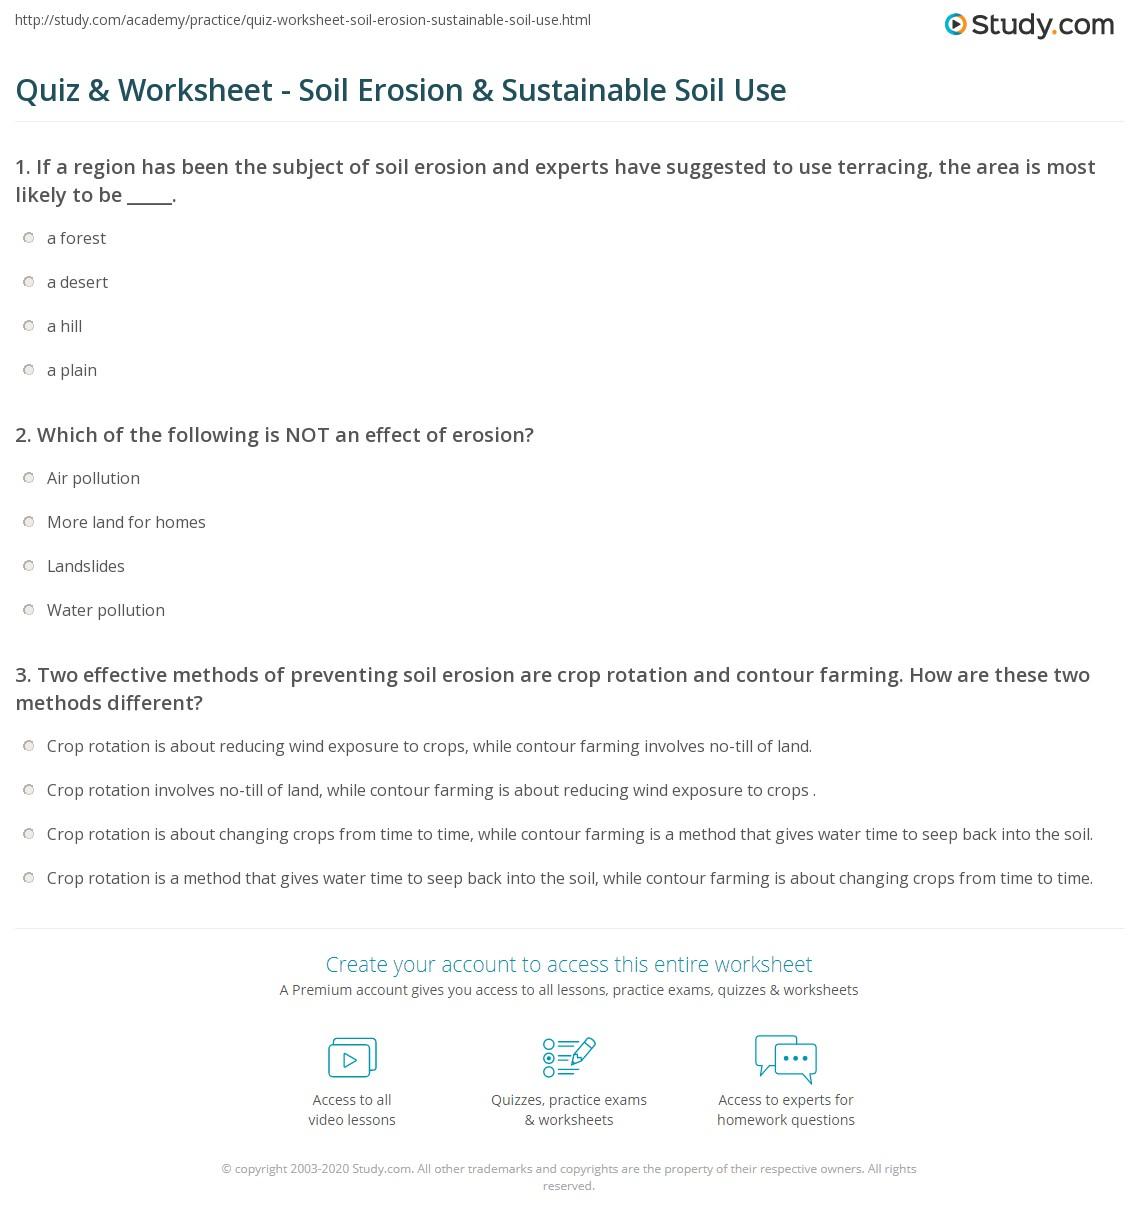 Printables Soil Conservation Worksheet quiz worksheet soil erosion sustainable use study com print conservation fighting with worksheet